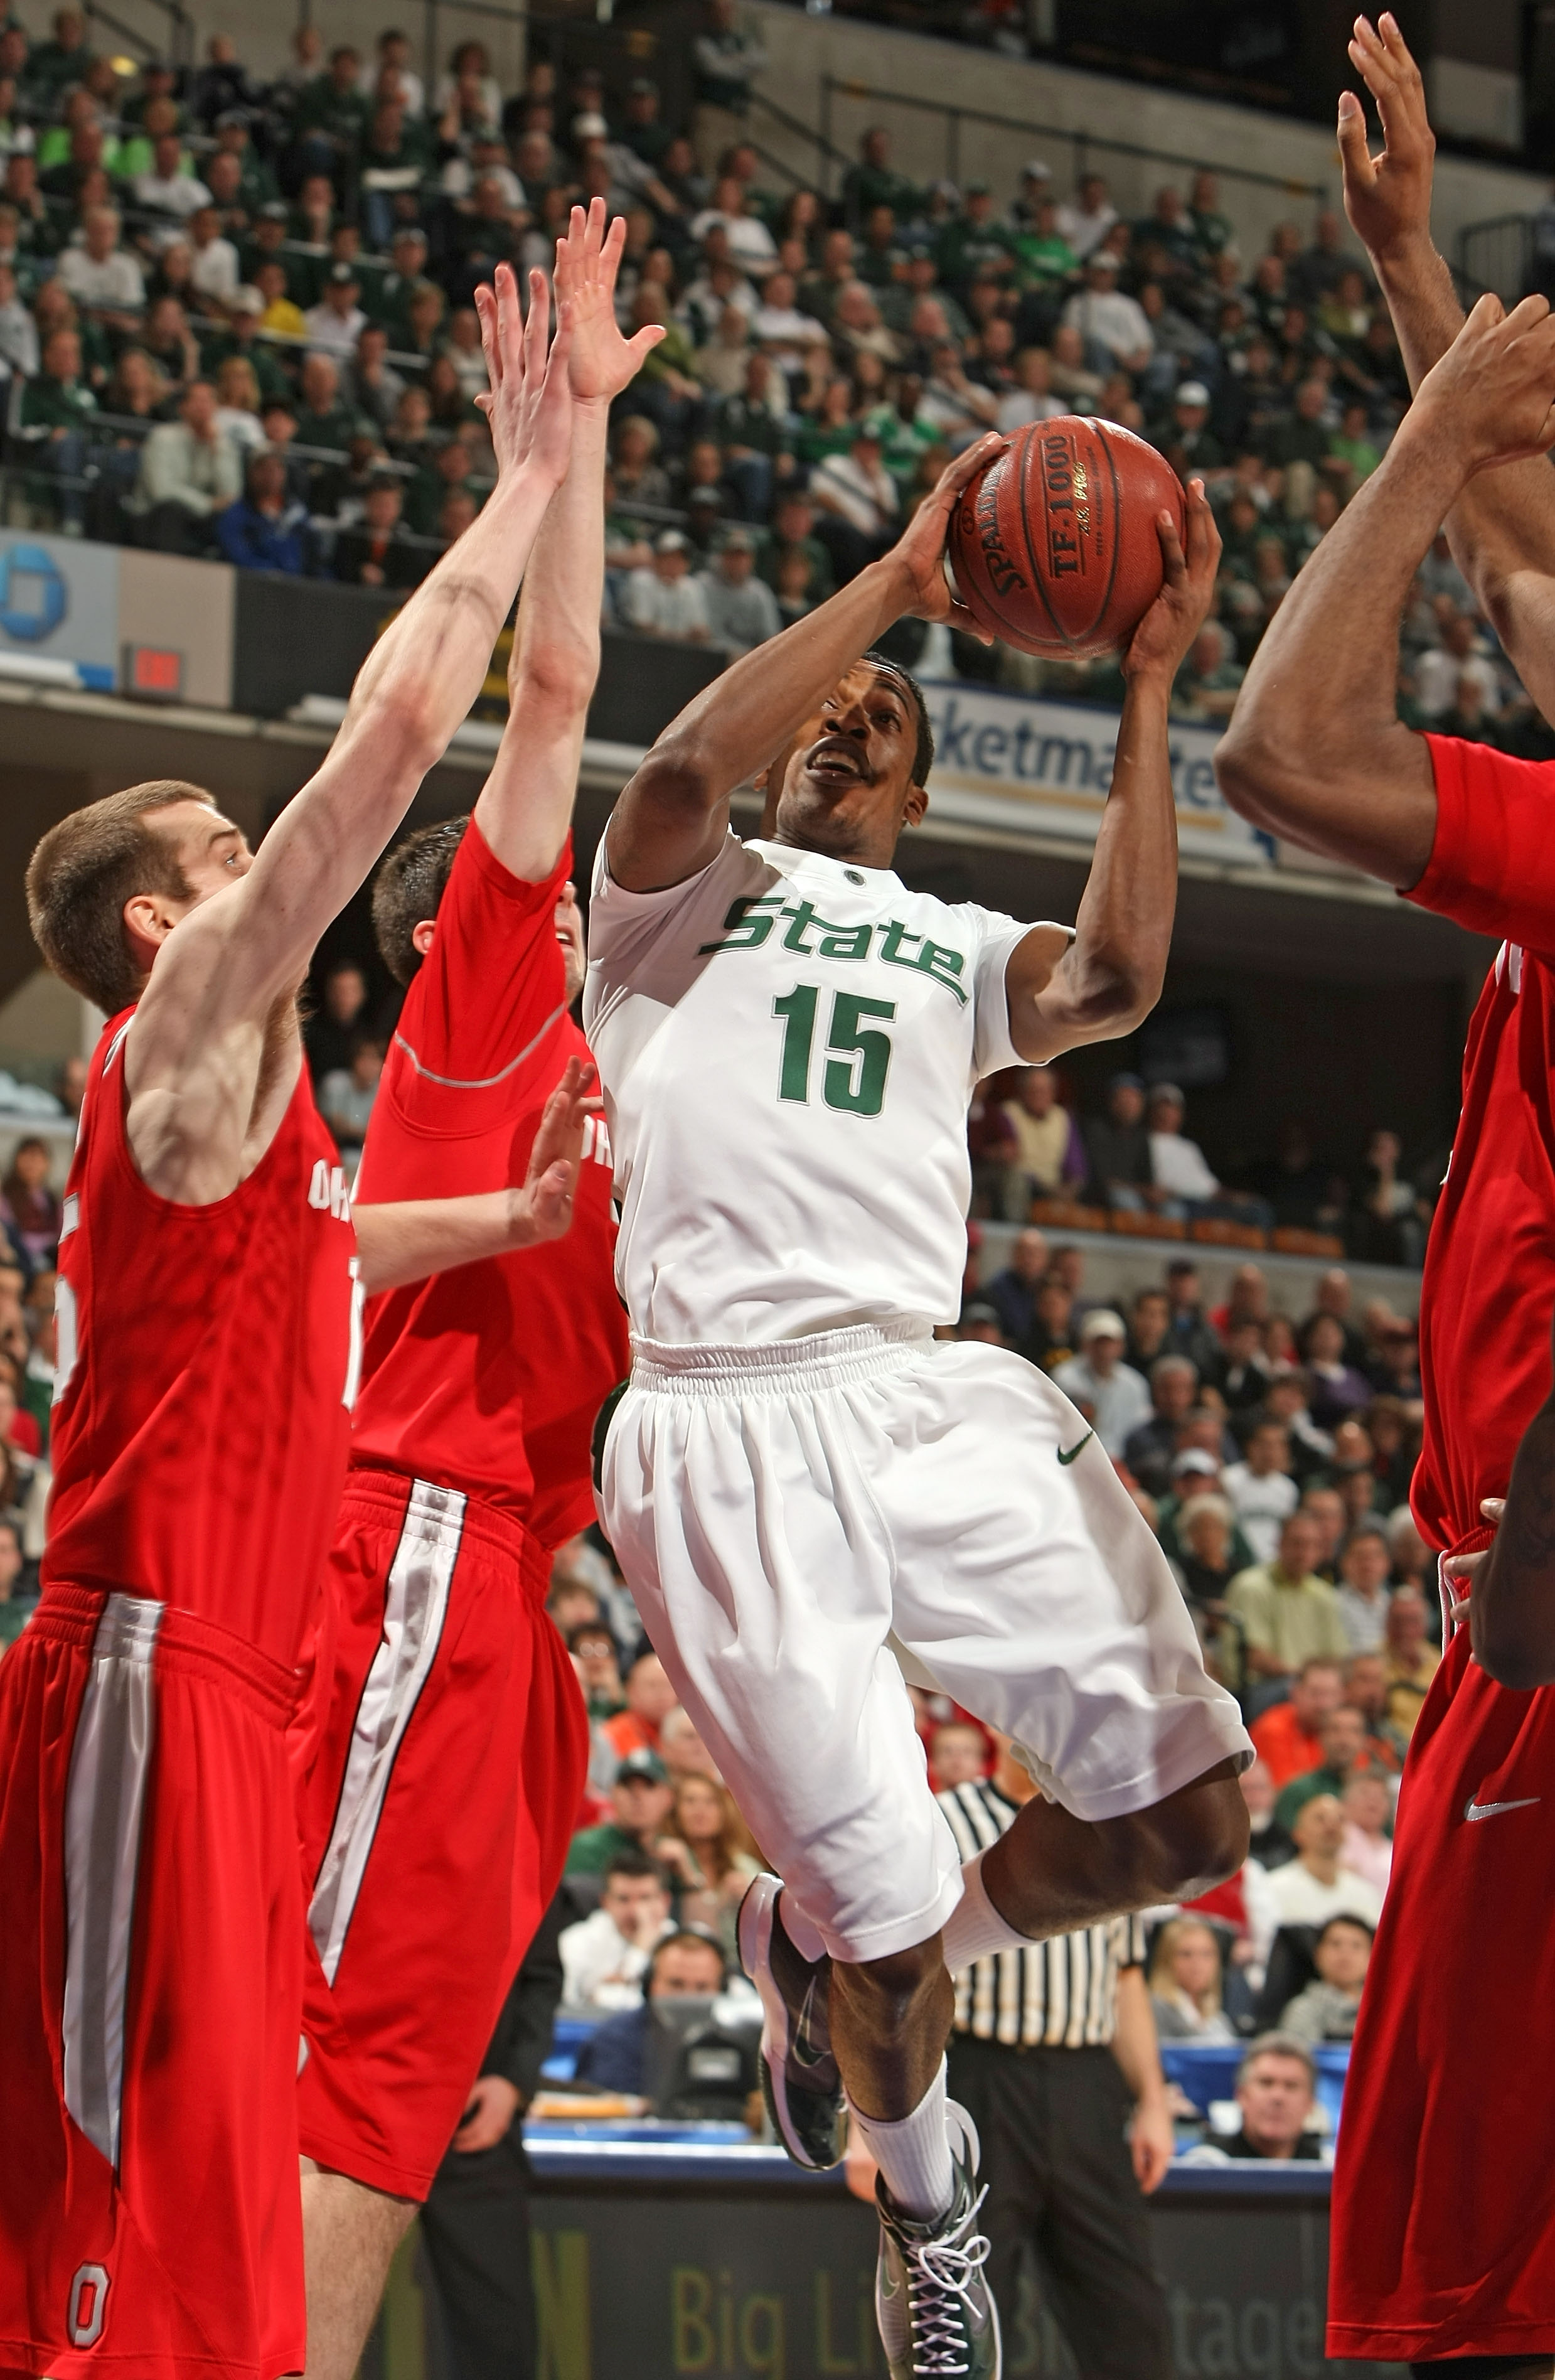 INDIANAPOLIS - MARCH 14:  Durrell Summers #15 of the Michigan State Spartans drives for a shot attempt against the Ohio State Buckeyes during their semifinal game of the Big Ten Men's Basketball Tournament at Conseco Fieldhouse on March 14, 2009 in Indian